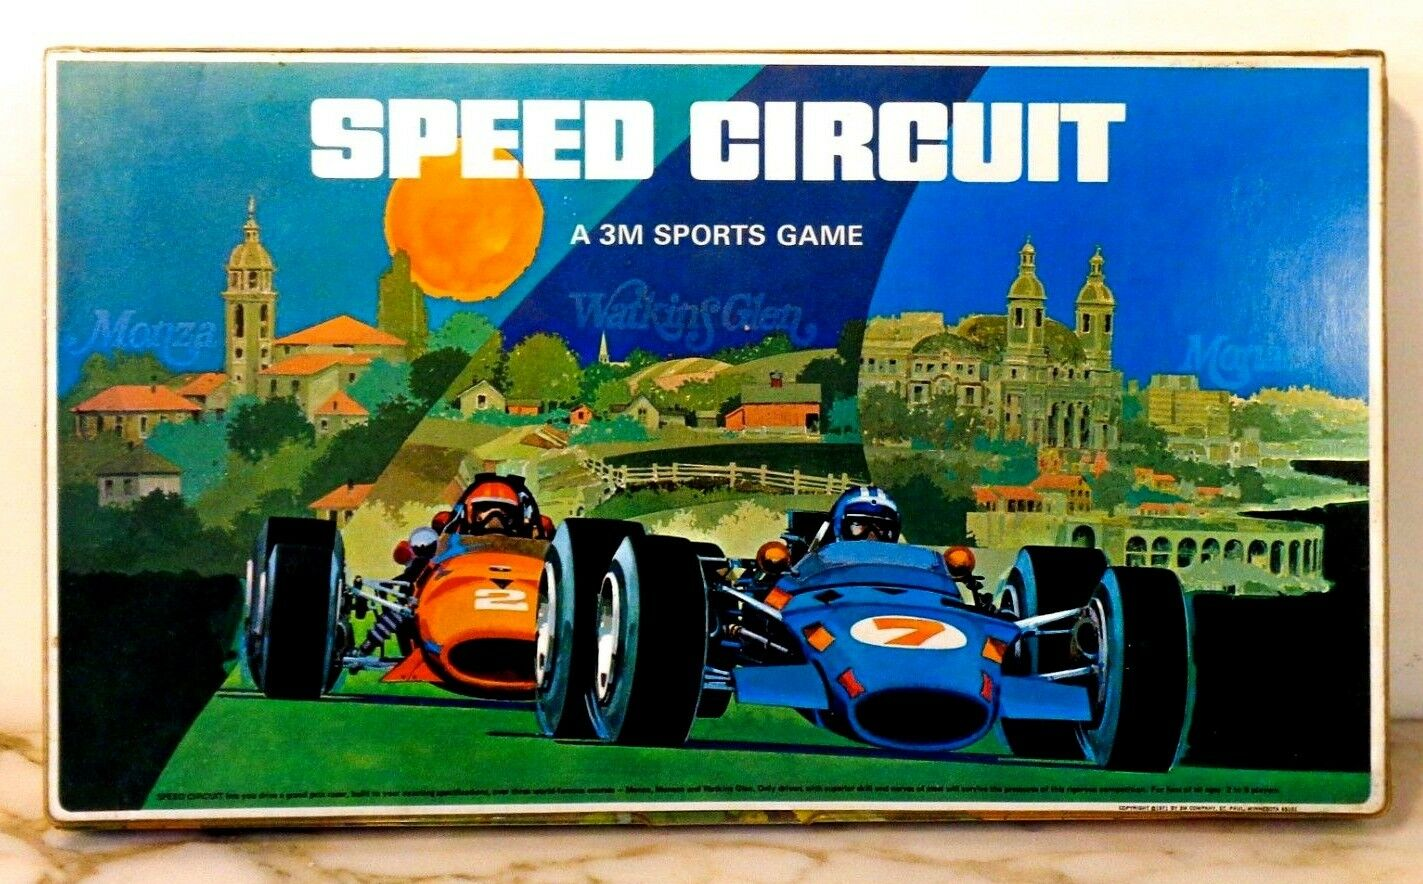 VINTAGE 'SPEED CIRCUIT' (A 3M SPORTS GAME) GRAN PRIX AUTO RACING GAMEBOARD 1971